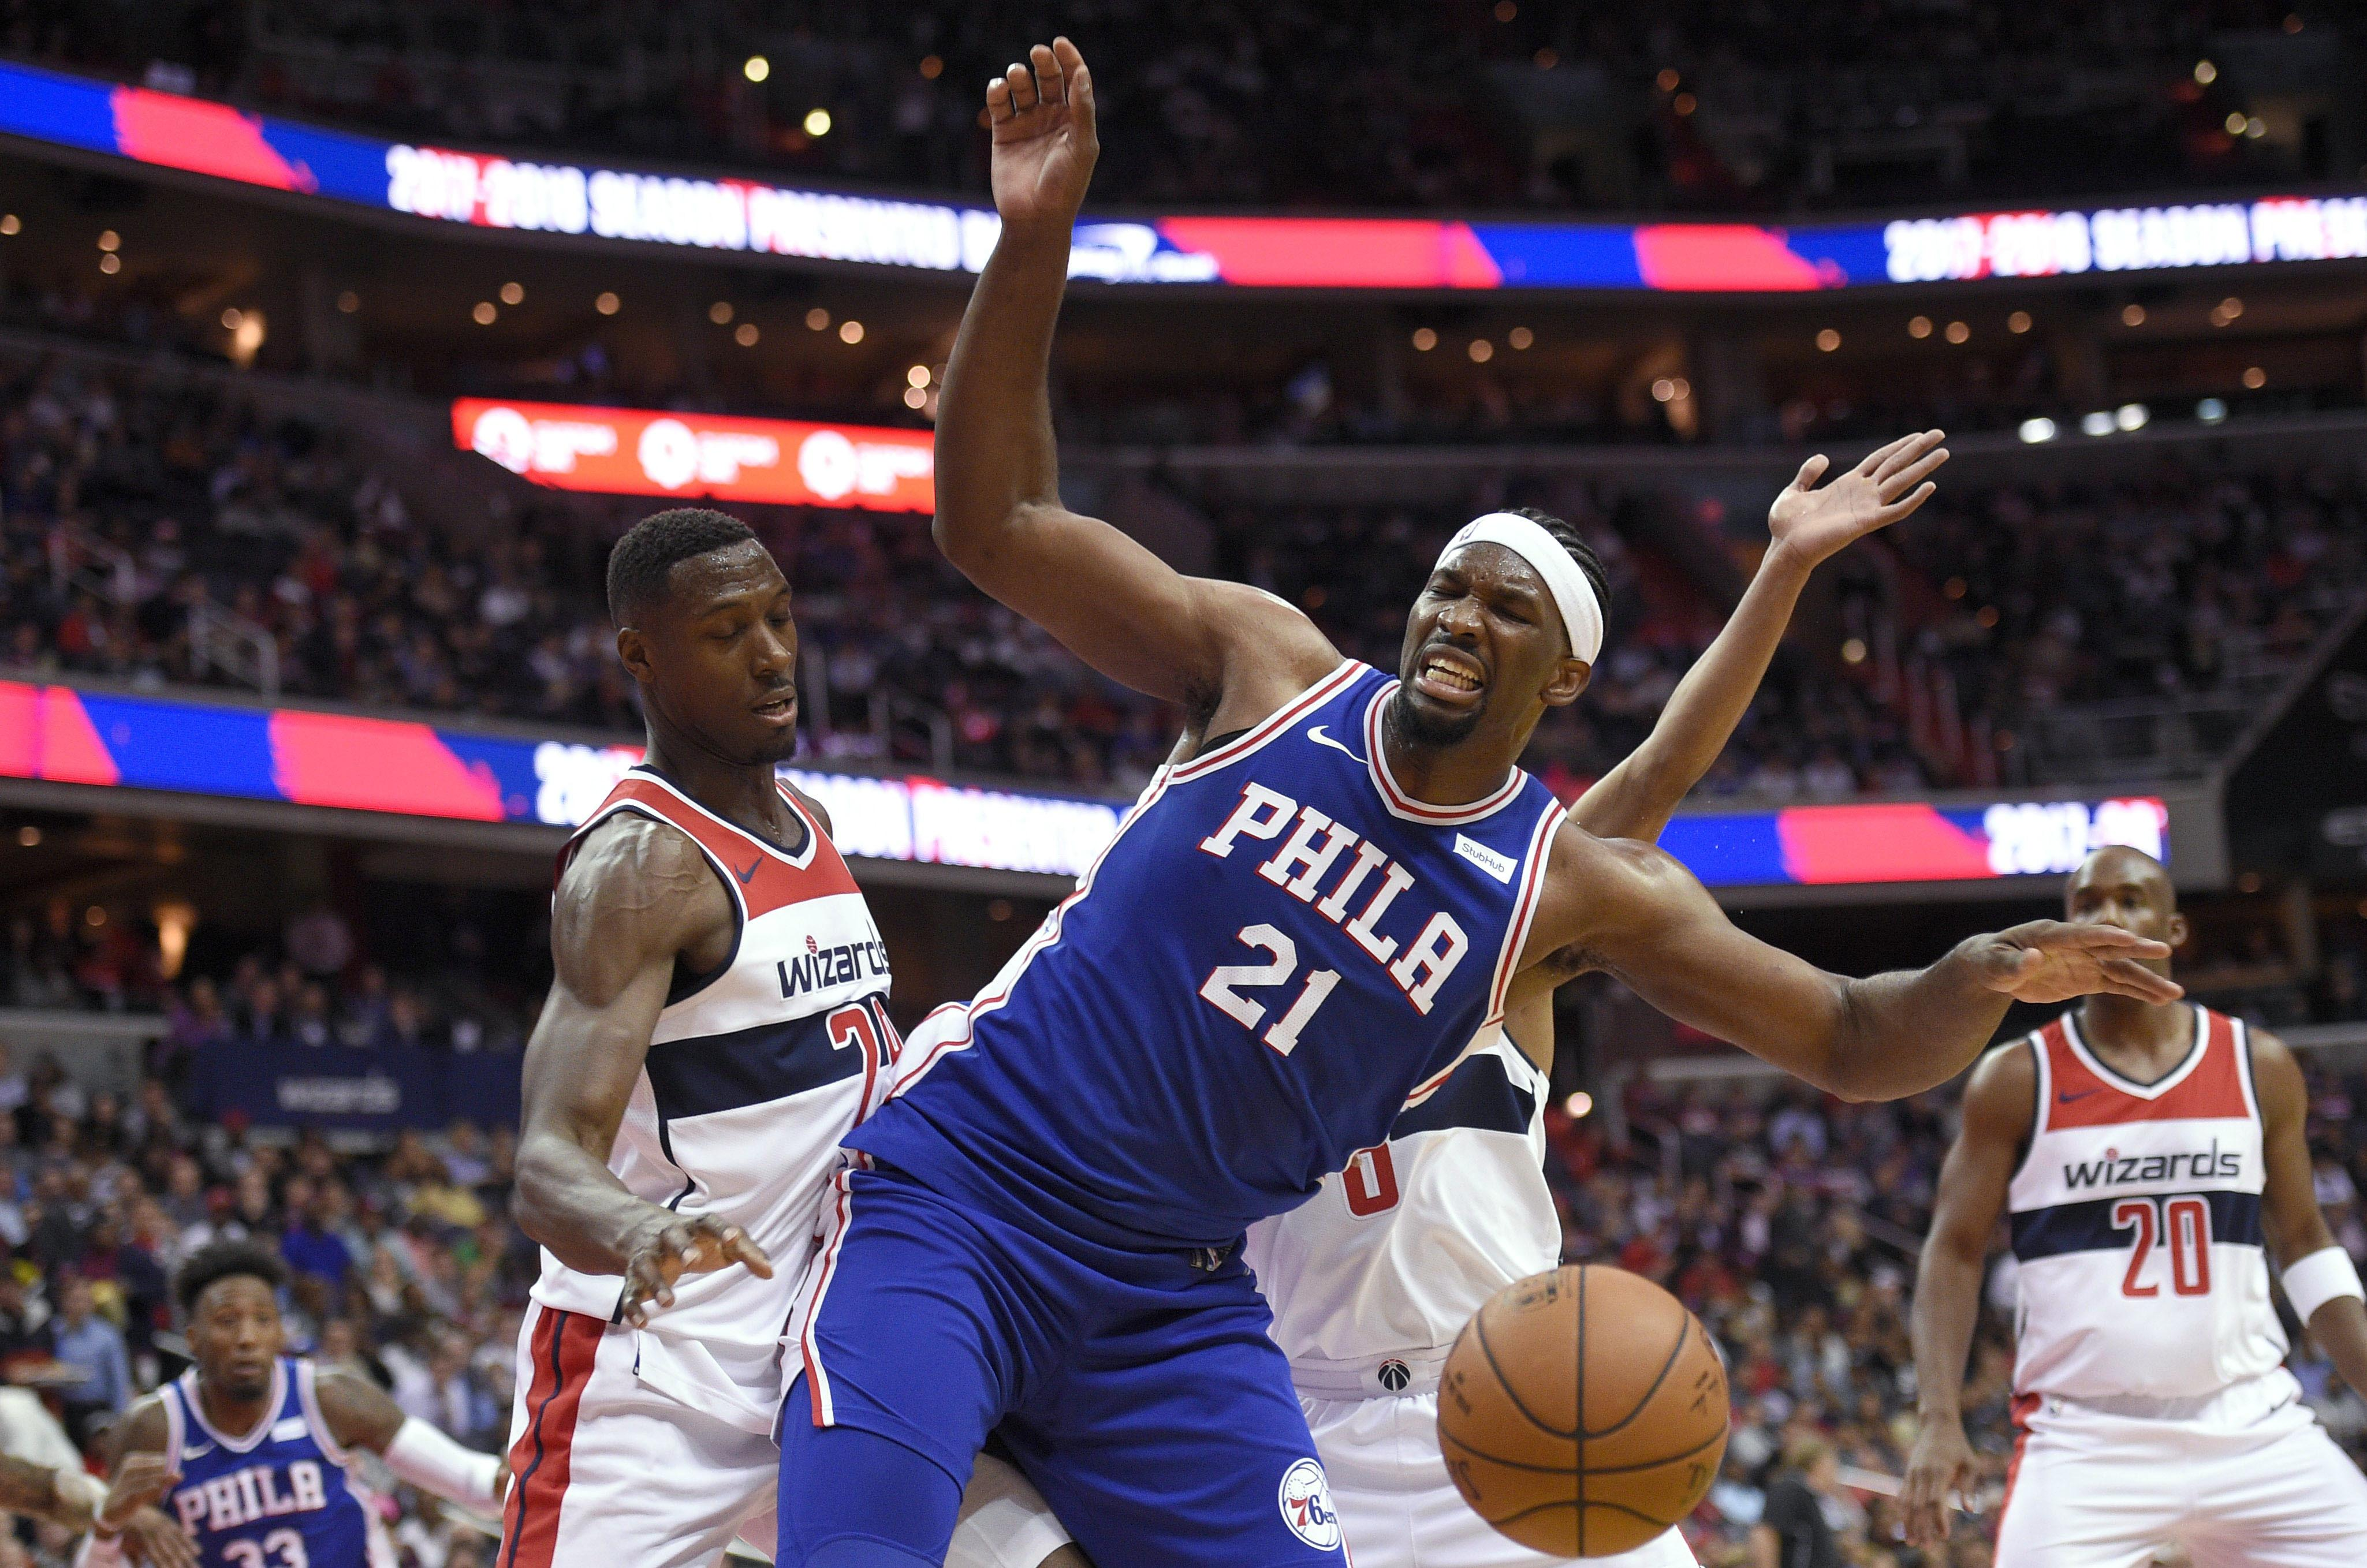 76ers_wizards_basketball_20881